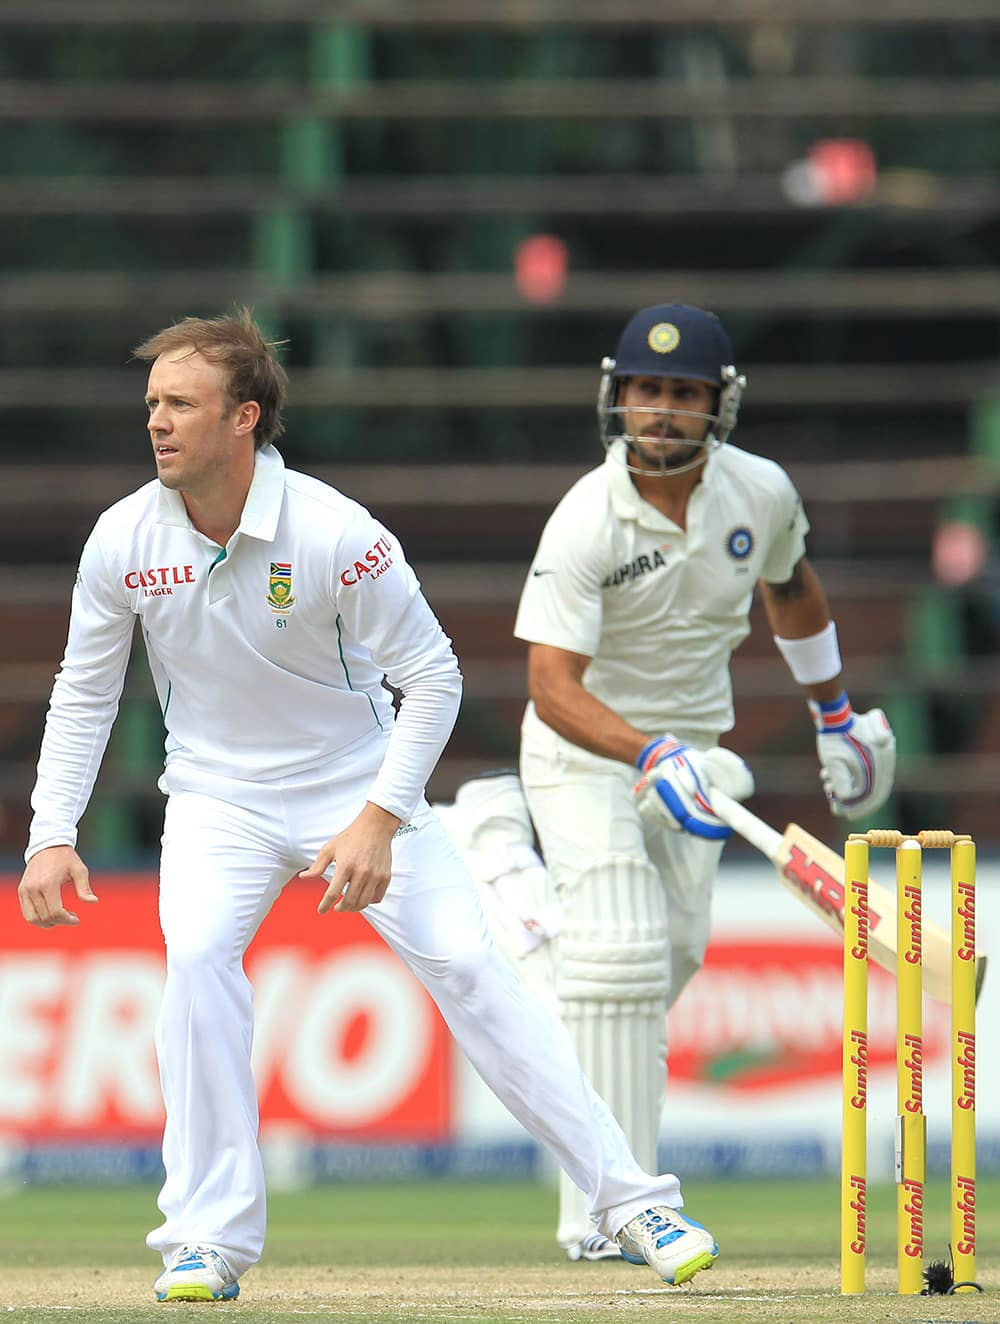 Ab de Villiers awaits the ball as Virat Kohli makes a run during India's 2nd innings on the third day of their cricket test match at Wanderers stadium in Johannesburg, South Africa.